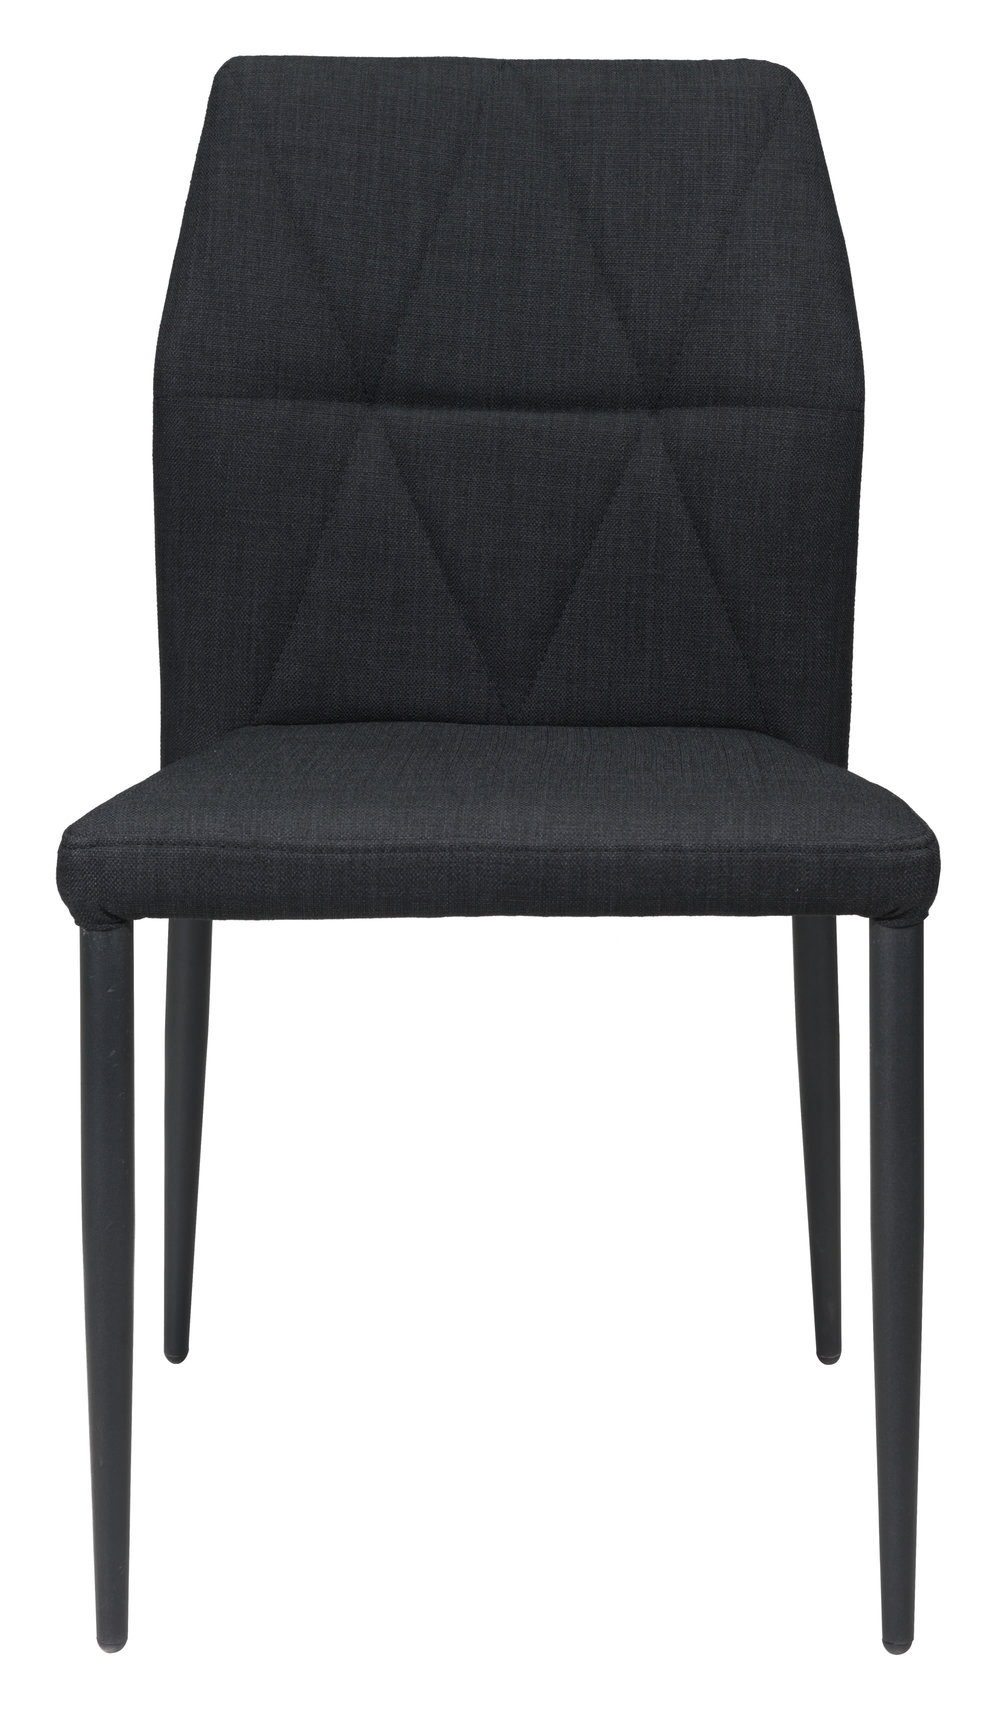 Zuo Modern Contemporary - Revolution Dining Chair - Set of 4 - Black